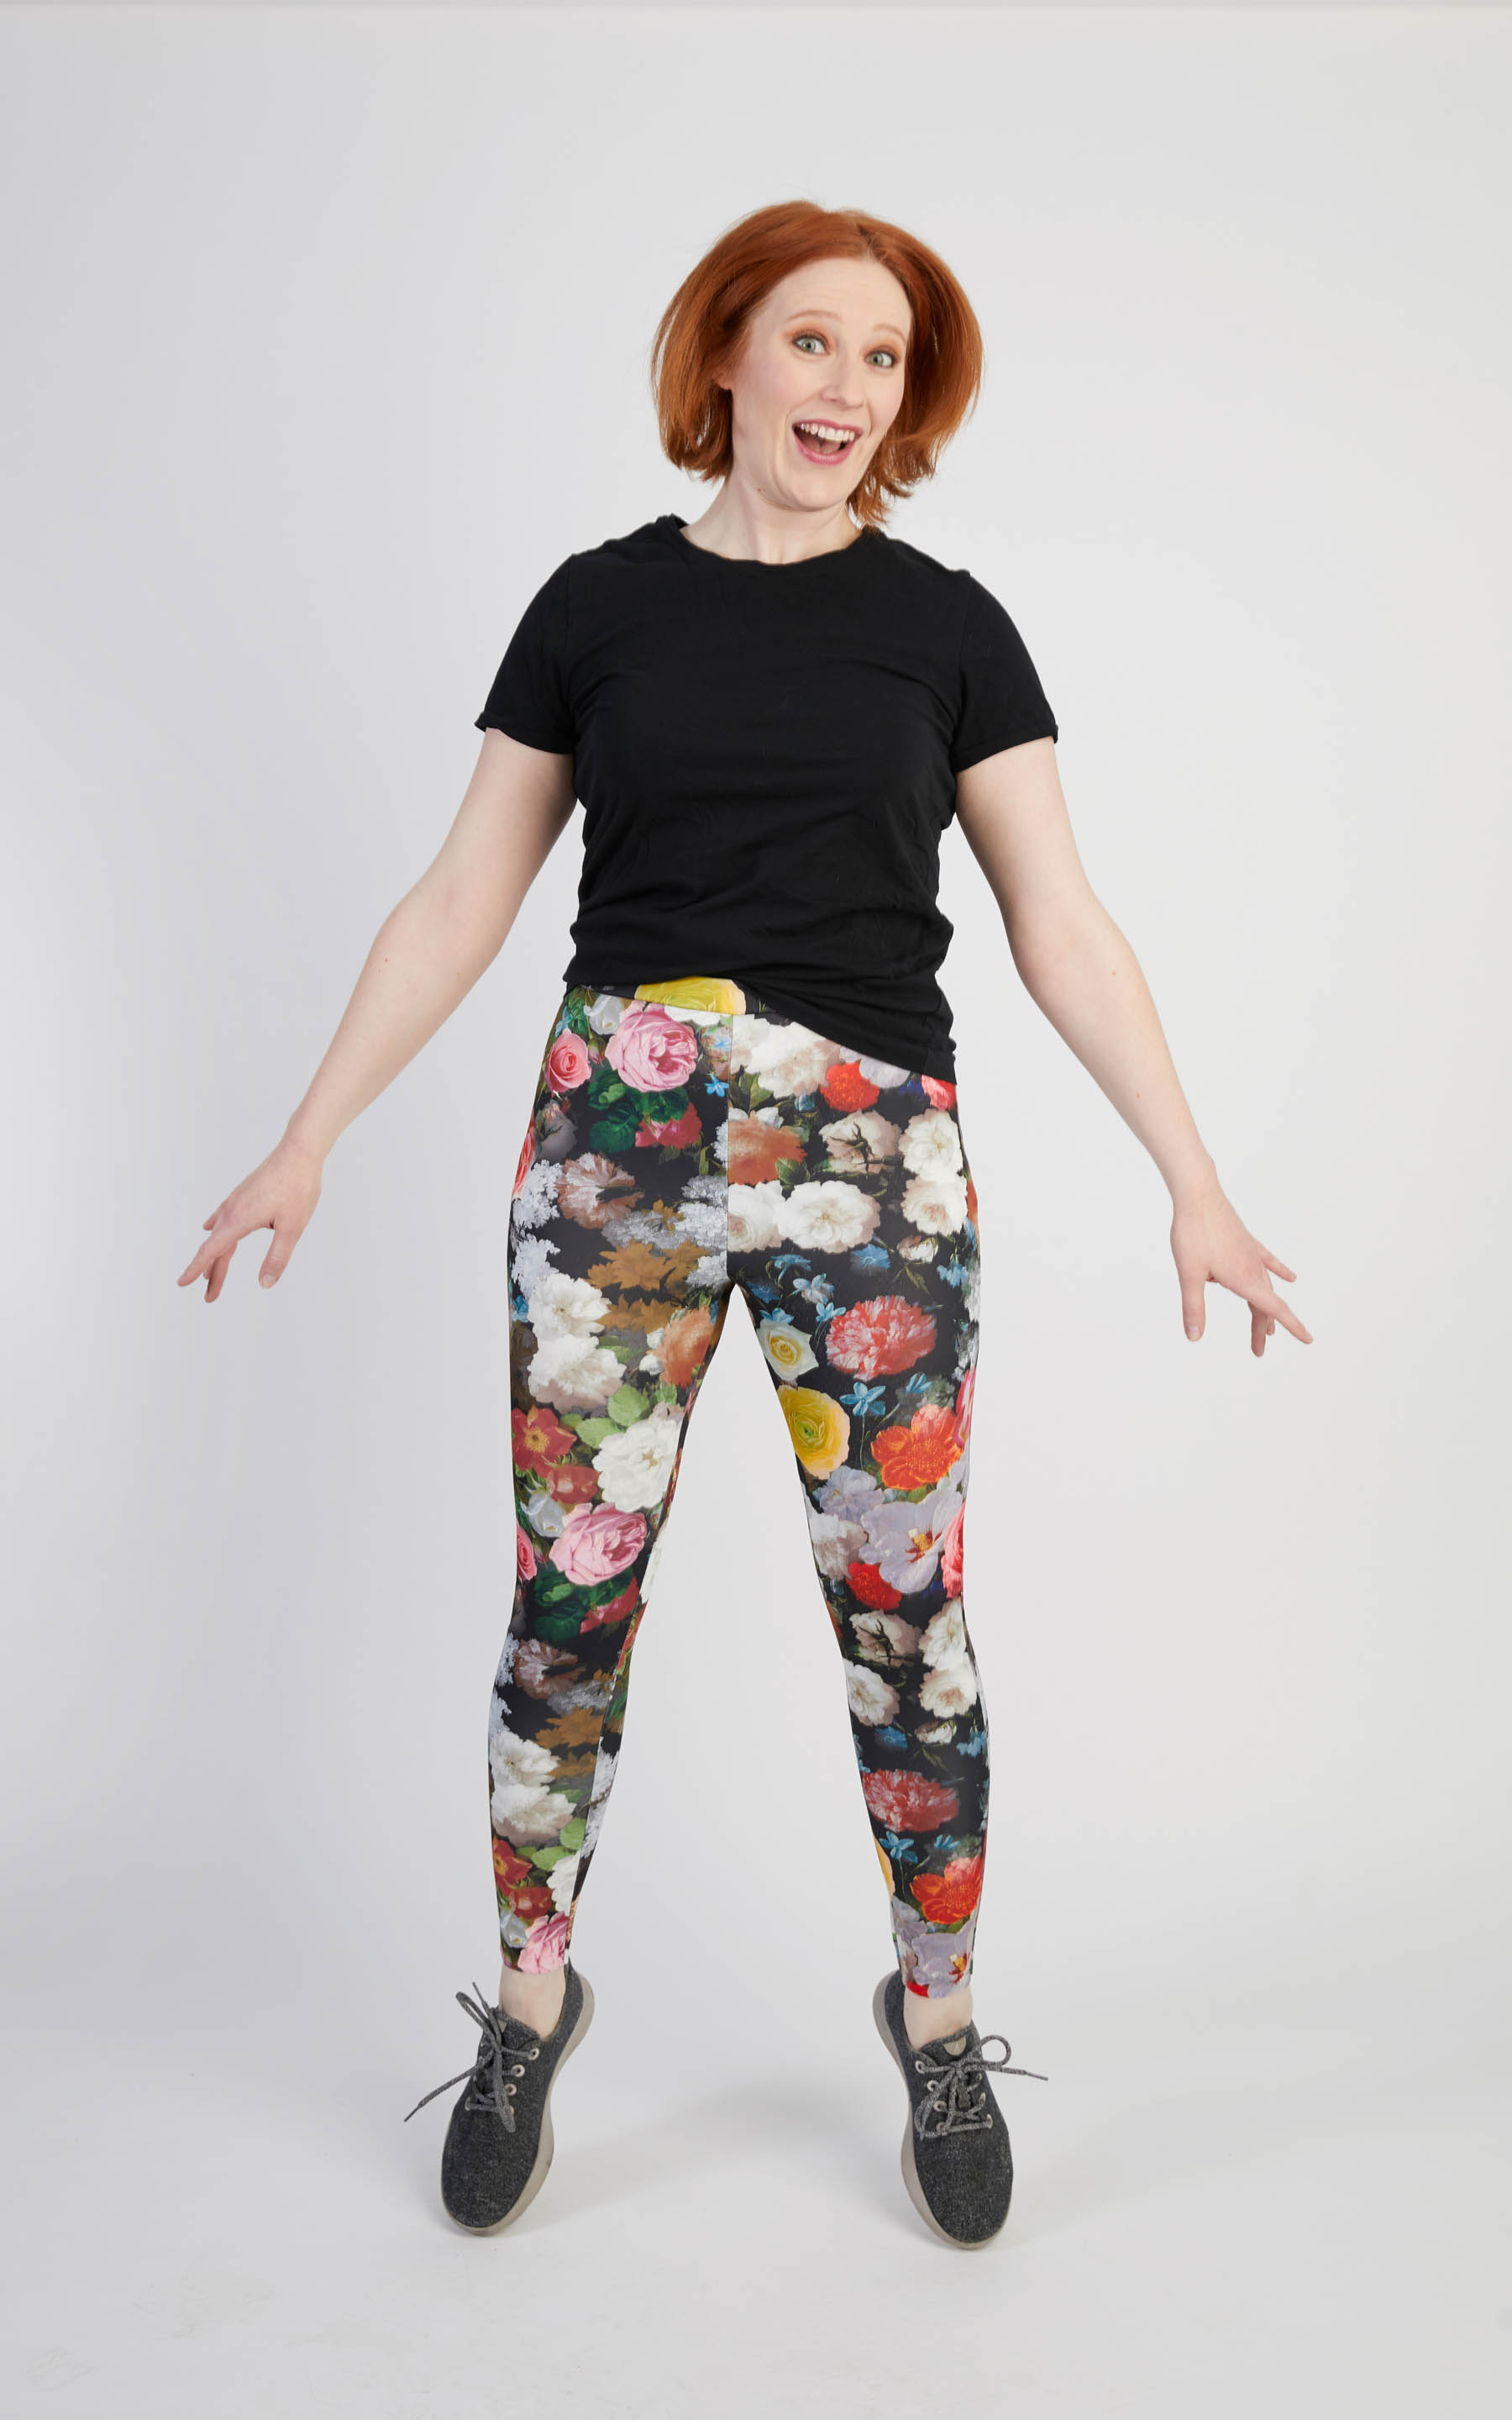 Cashmerette Belmont Leggings plus size activewear sewing pattern